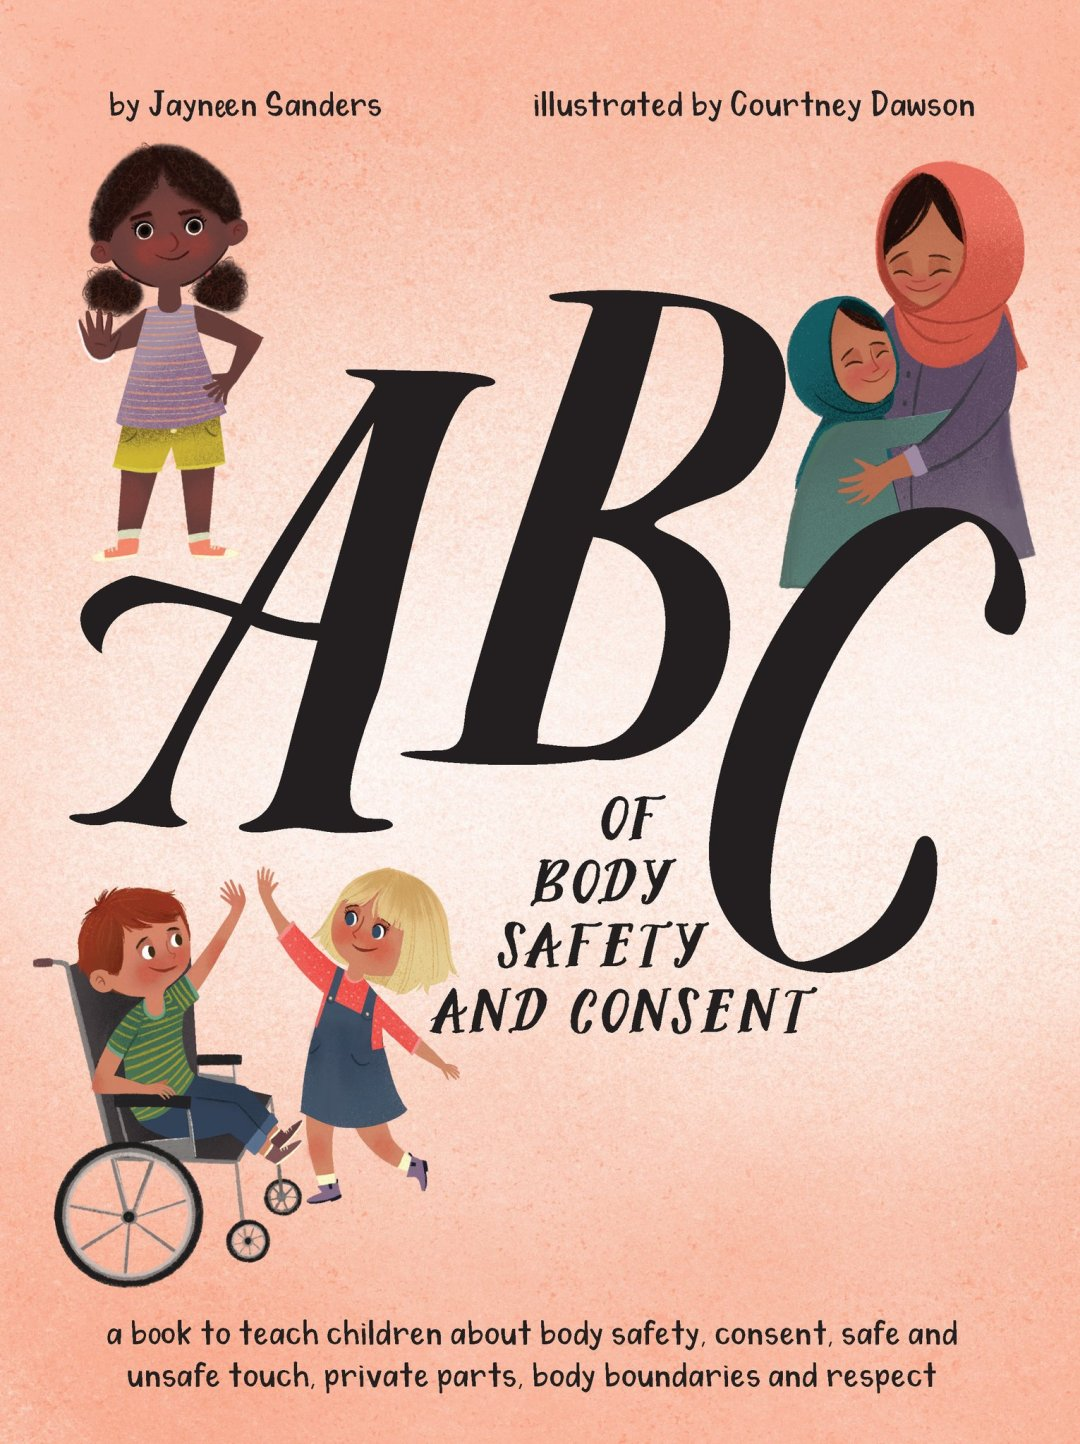 Book Cover Image for ABC of Body Safety and Consent